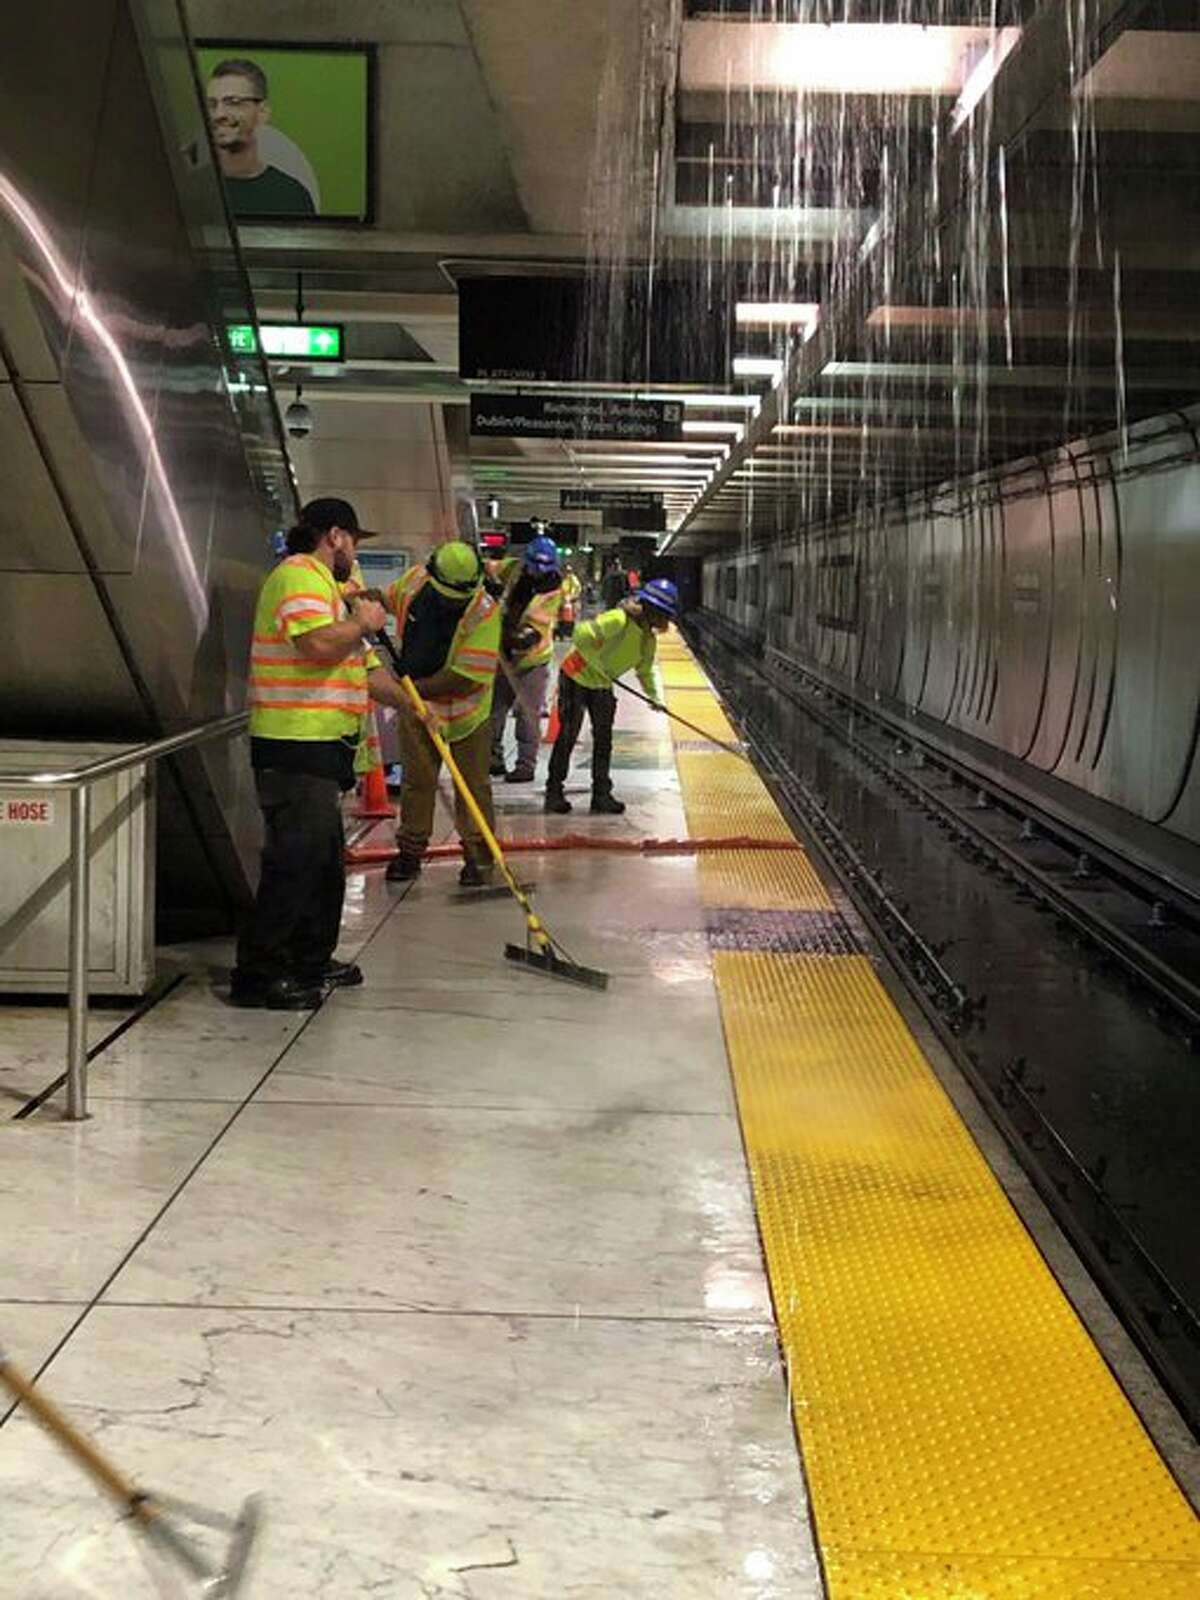 BART shared this photo of employees dealing with flooding at Embarcadero station due to flooding from the Muni level pouring into the station.